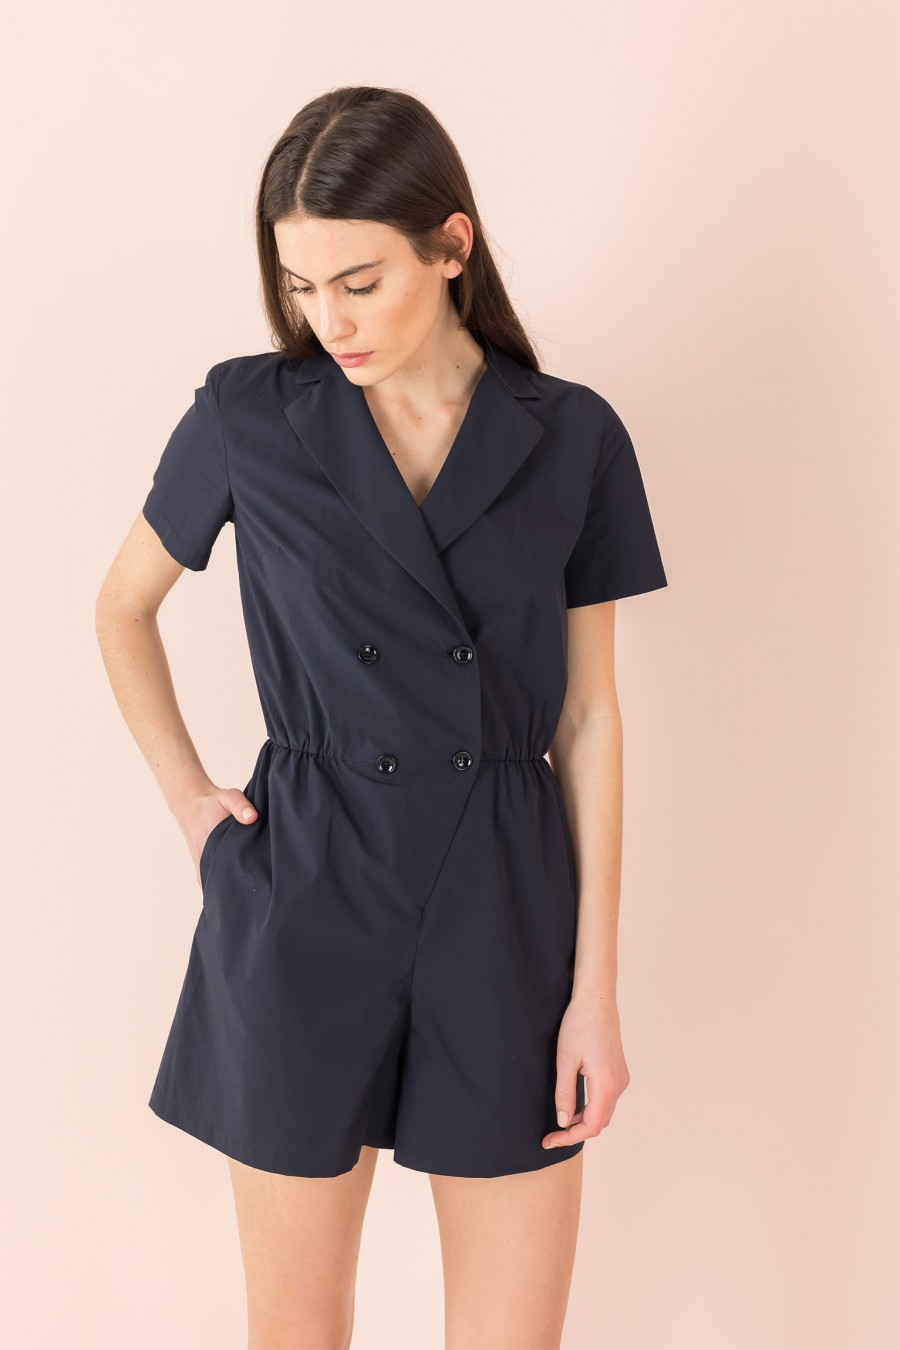 blue overalls with short sleeves